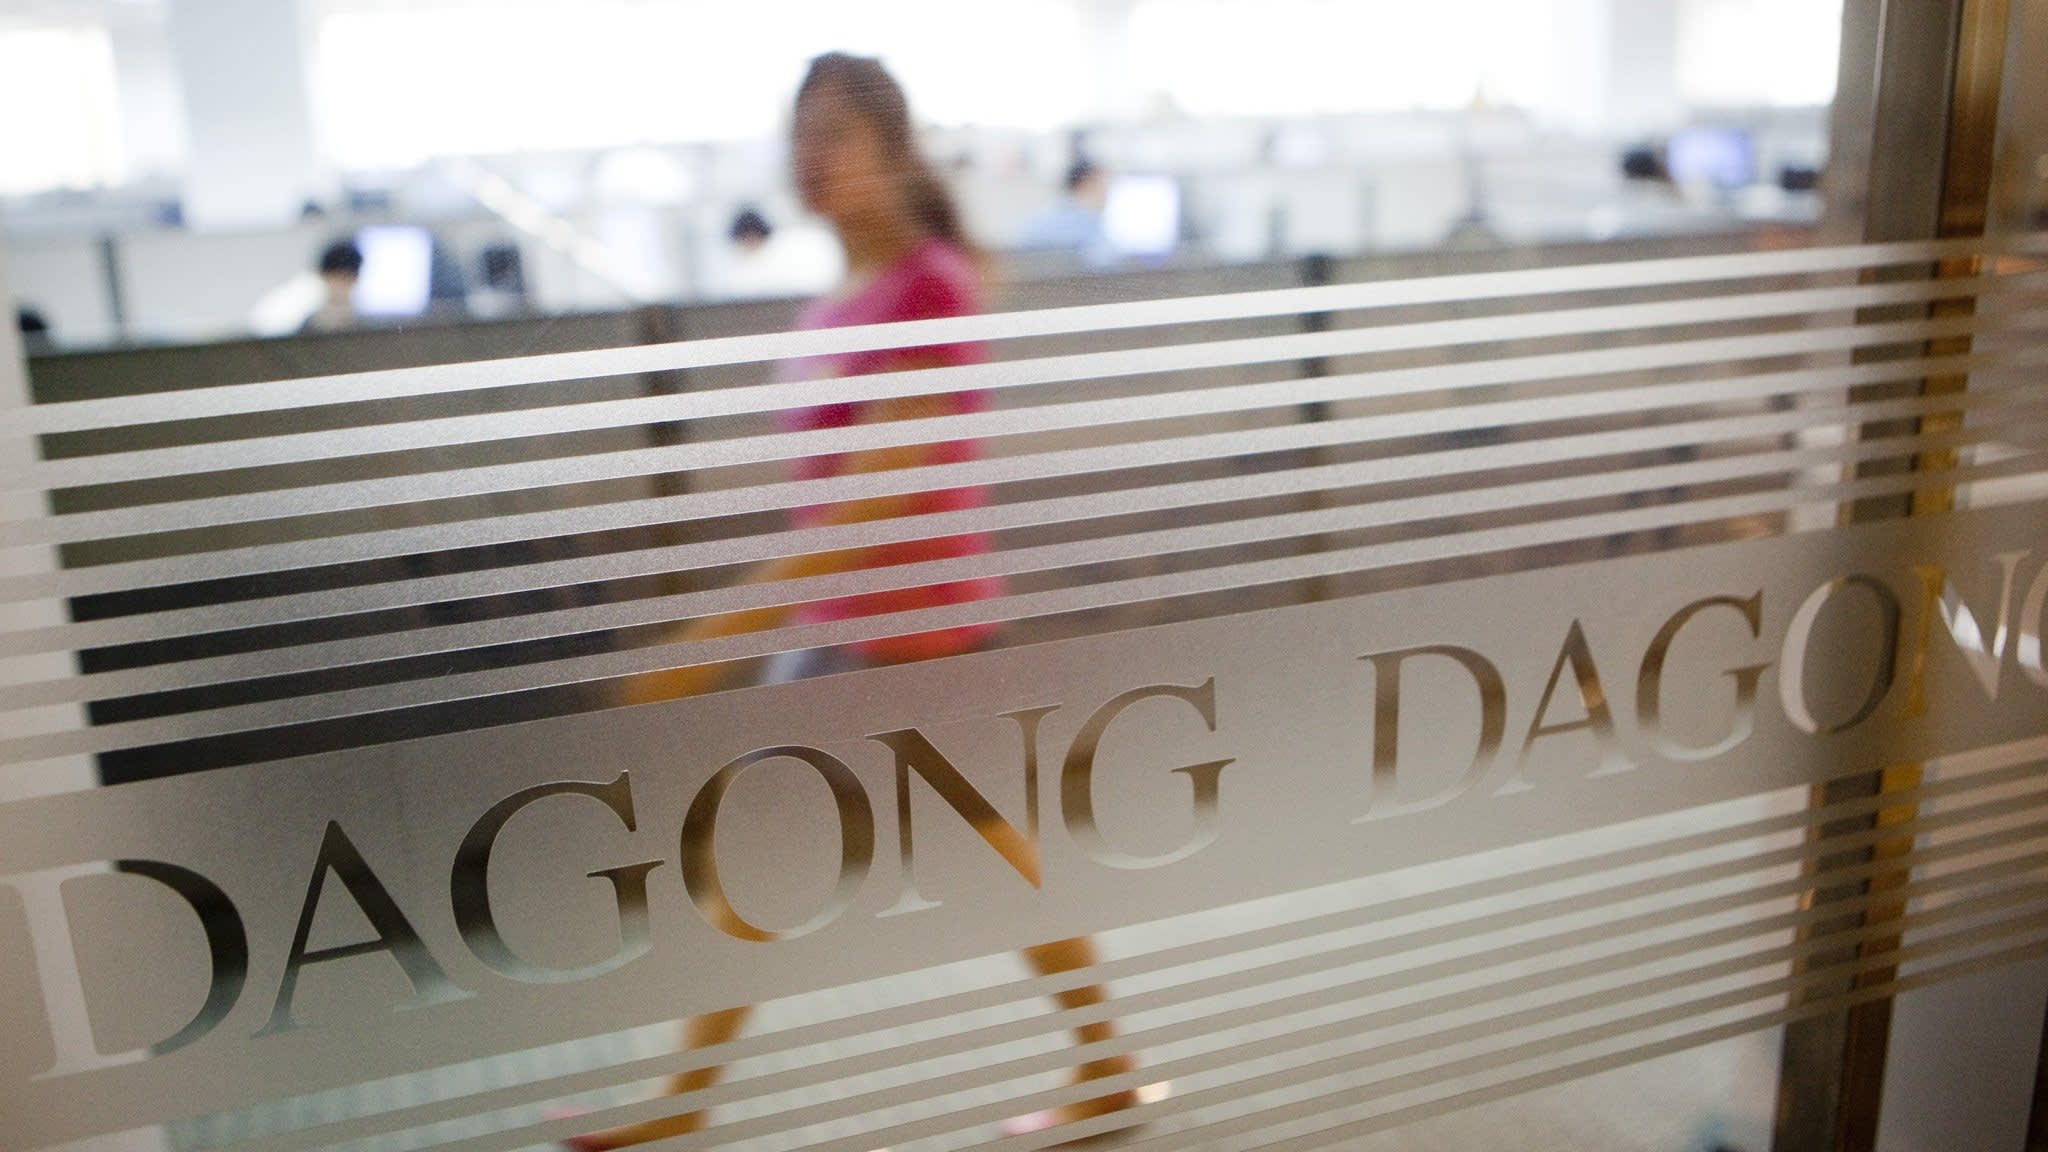 China's Dagong rating agency taken over by state-owned investor | Financial Times